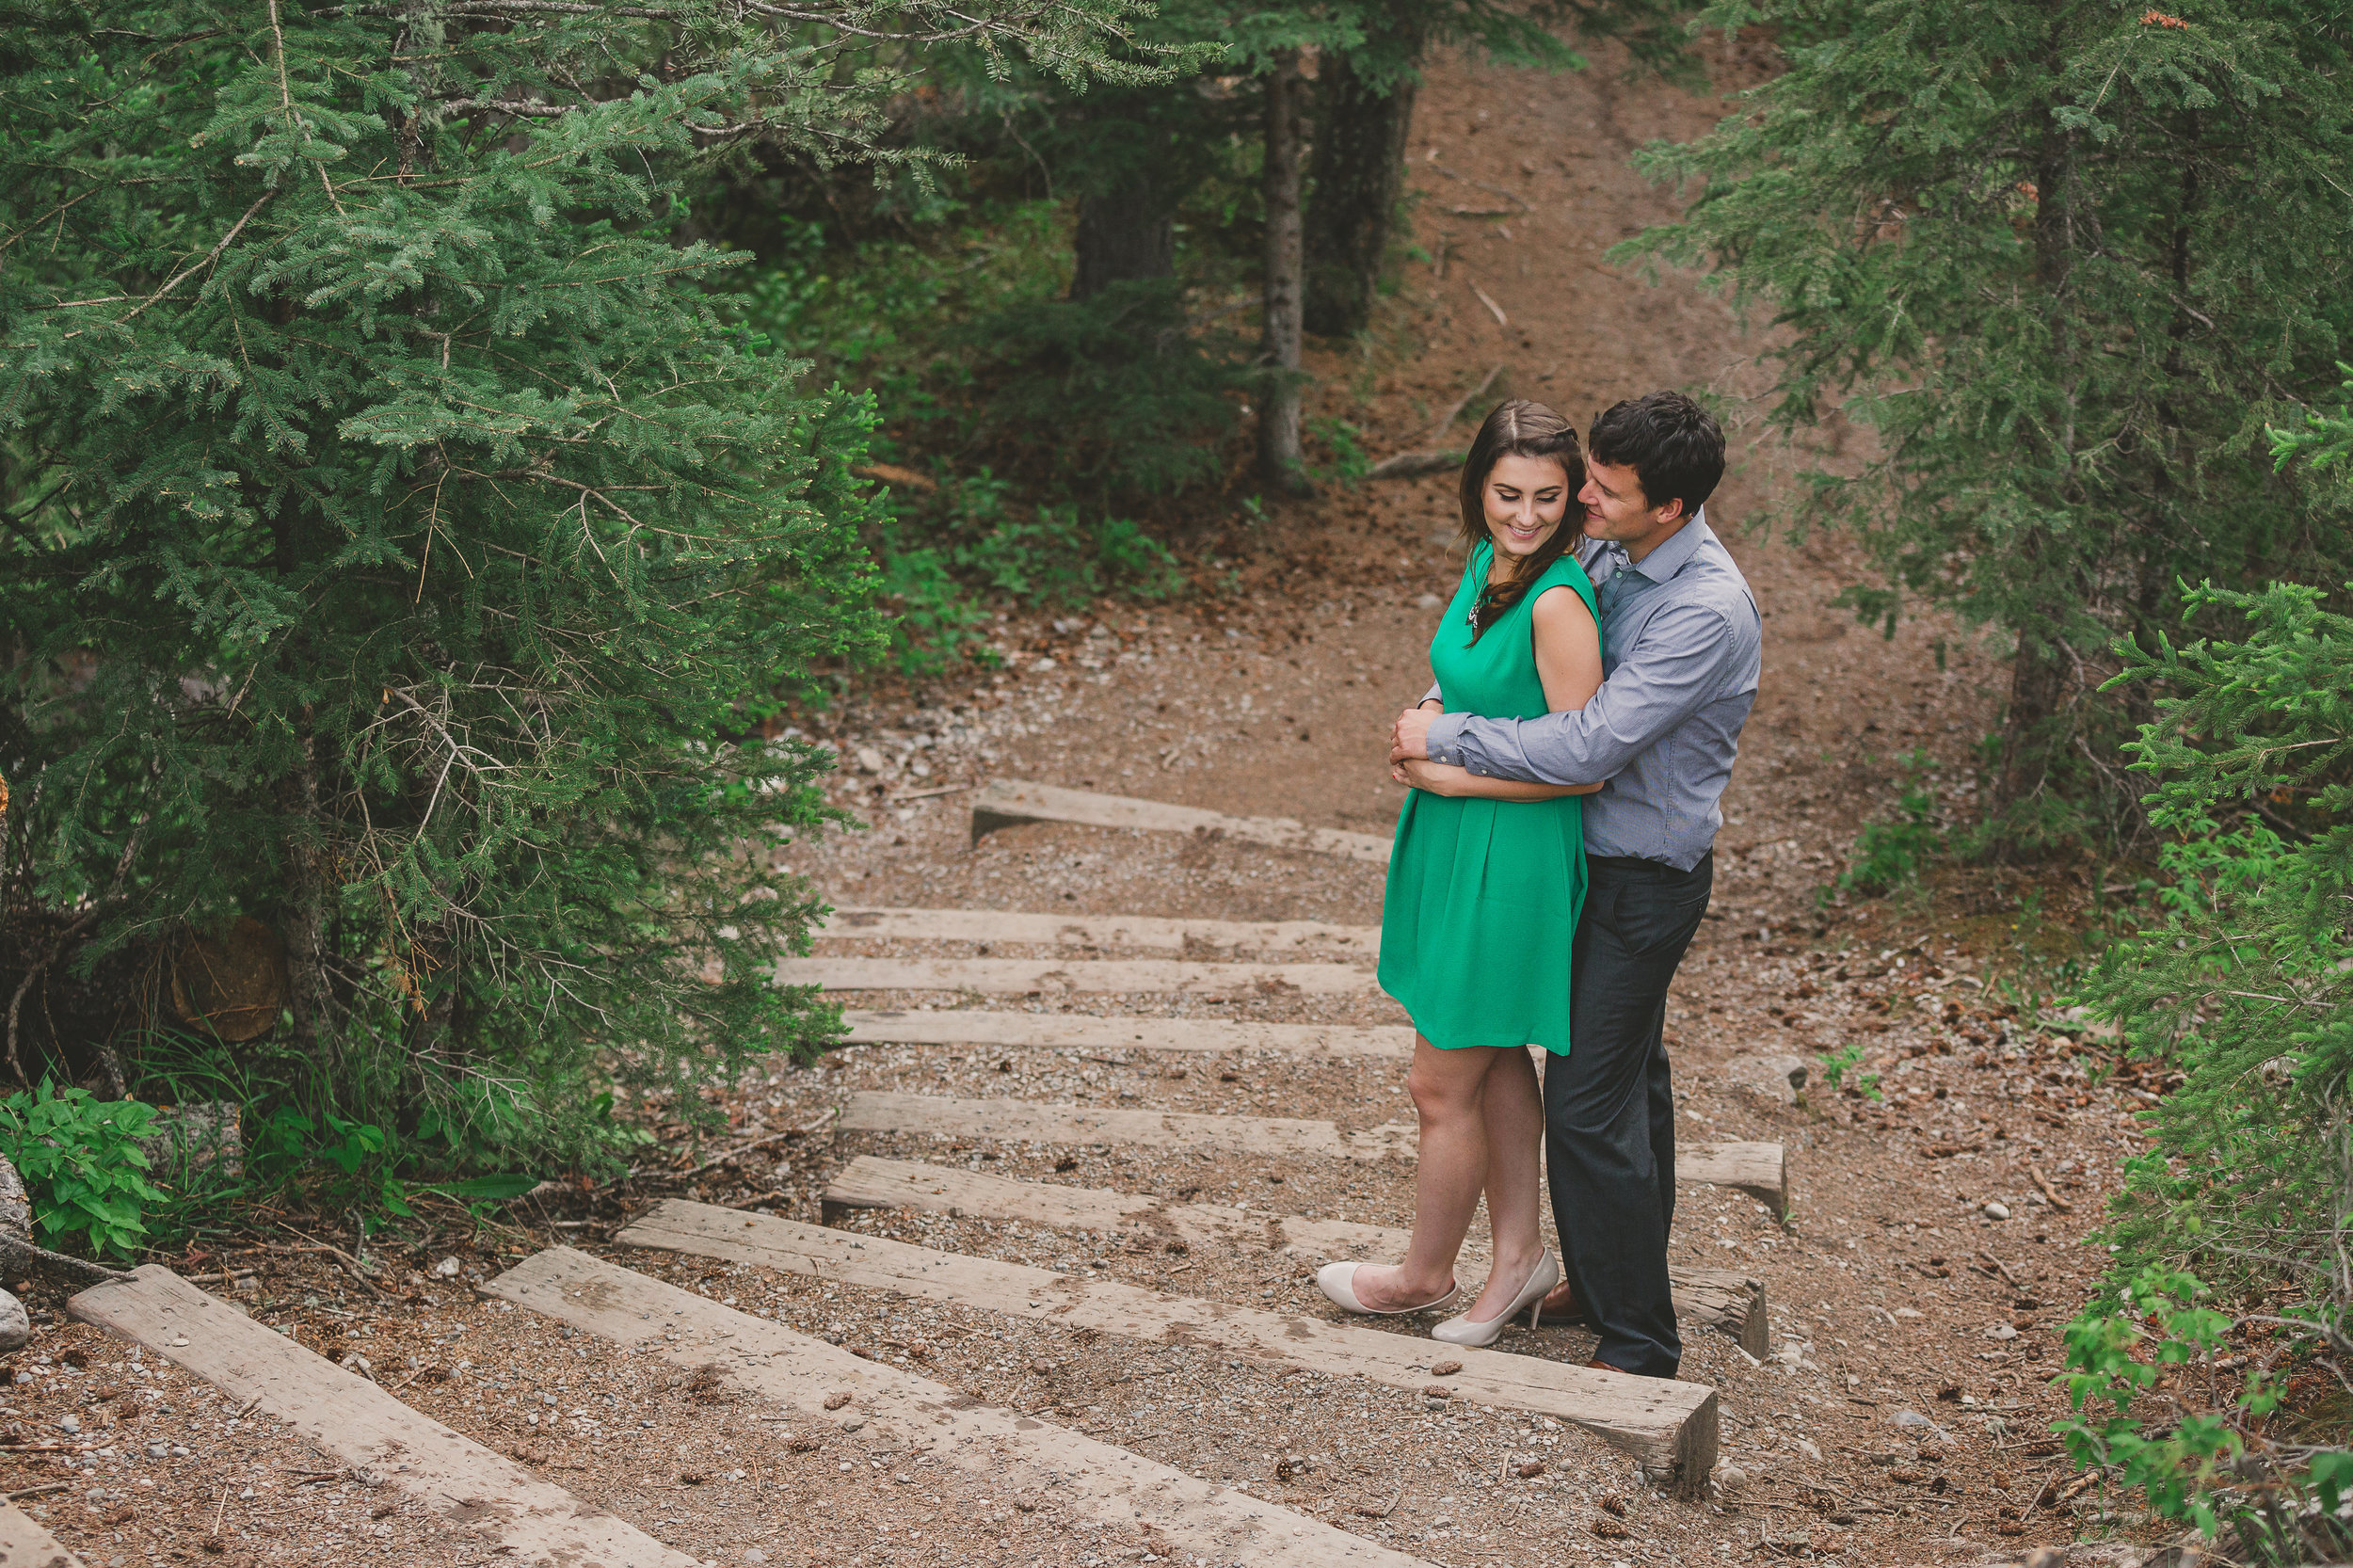 EngagementIza&Matthew (138 of 211).jpg